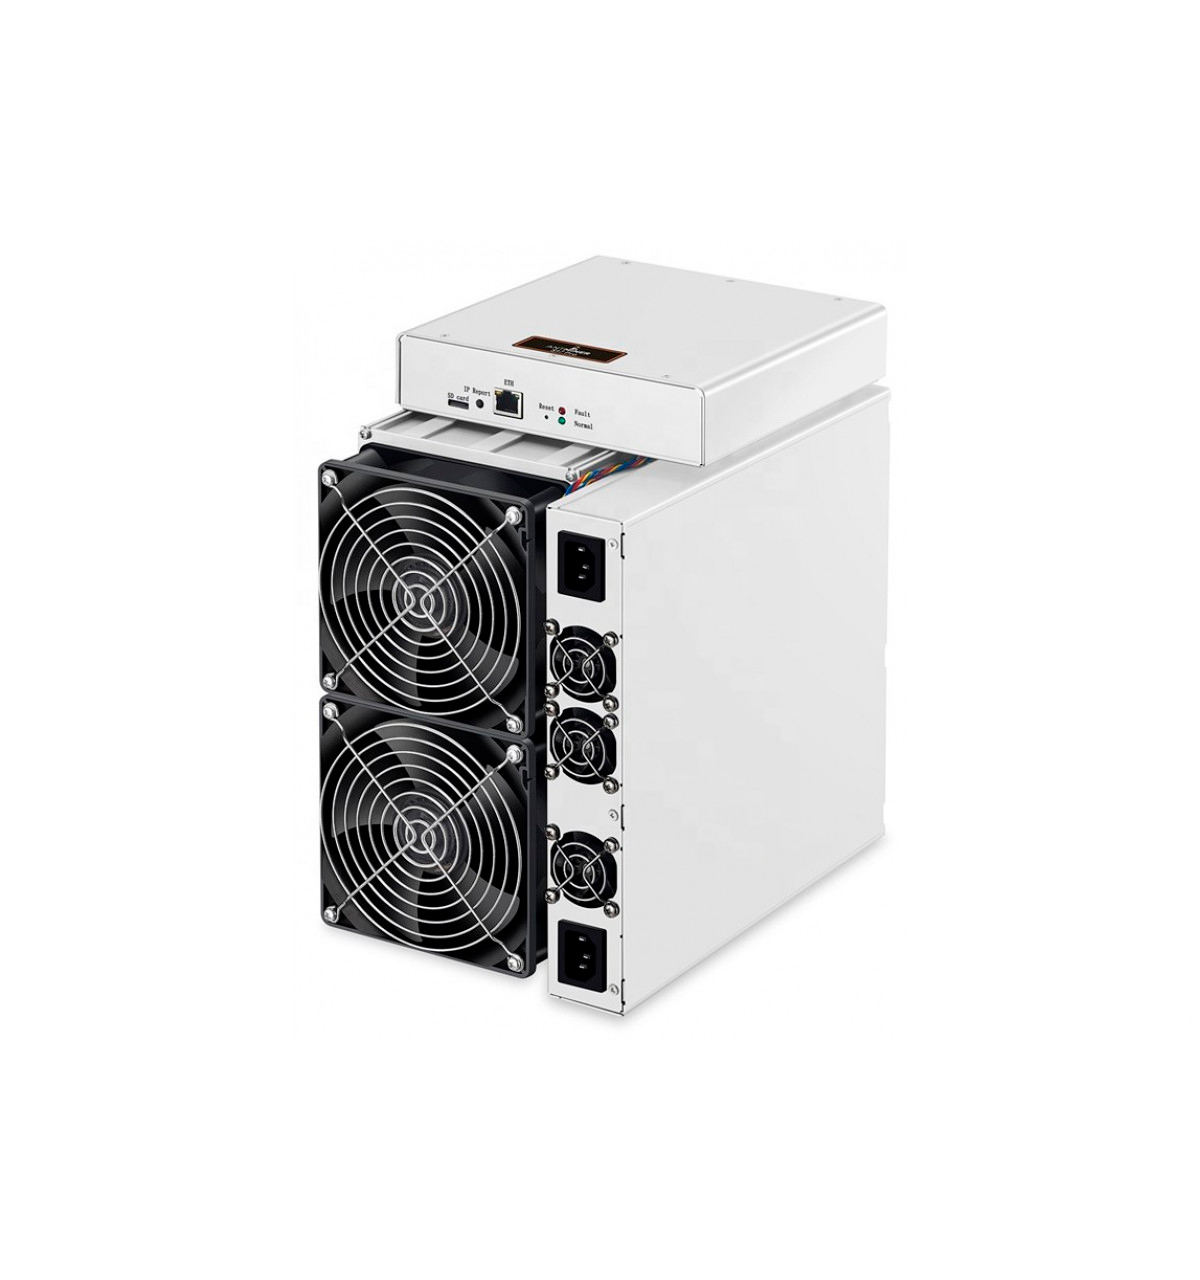 Asic Antminer S19 Pro -110 TH